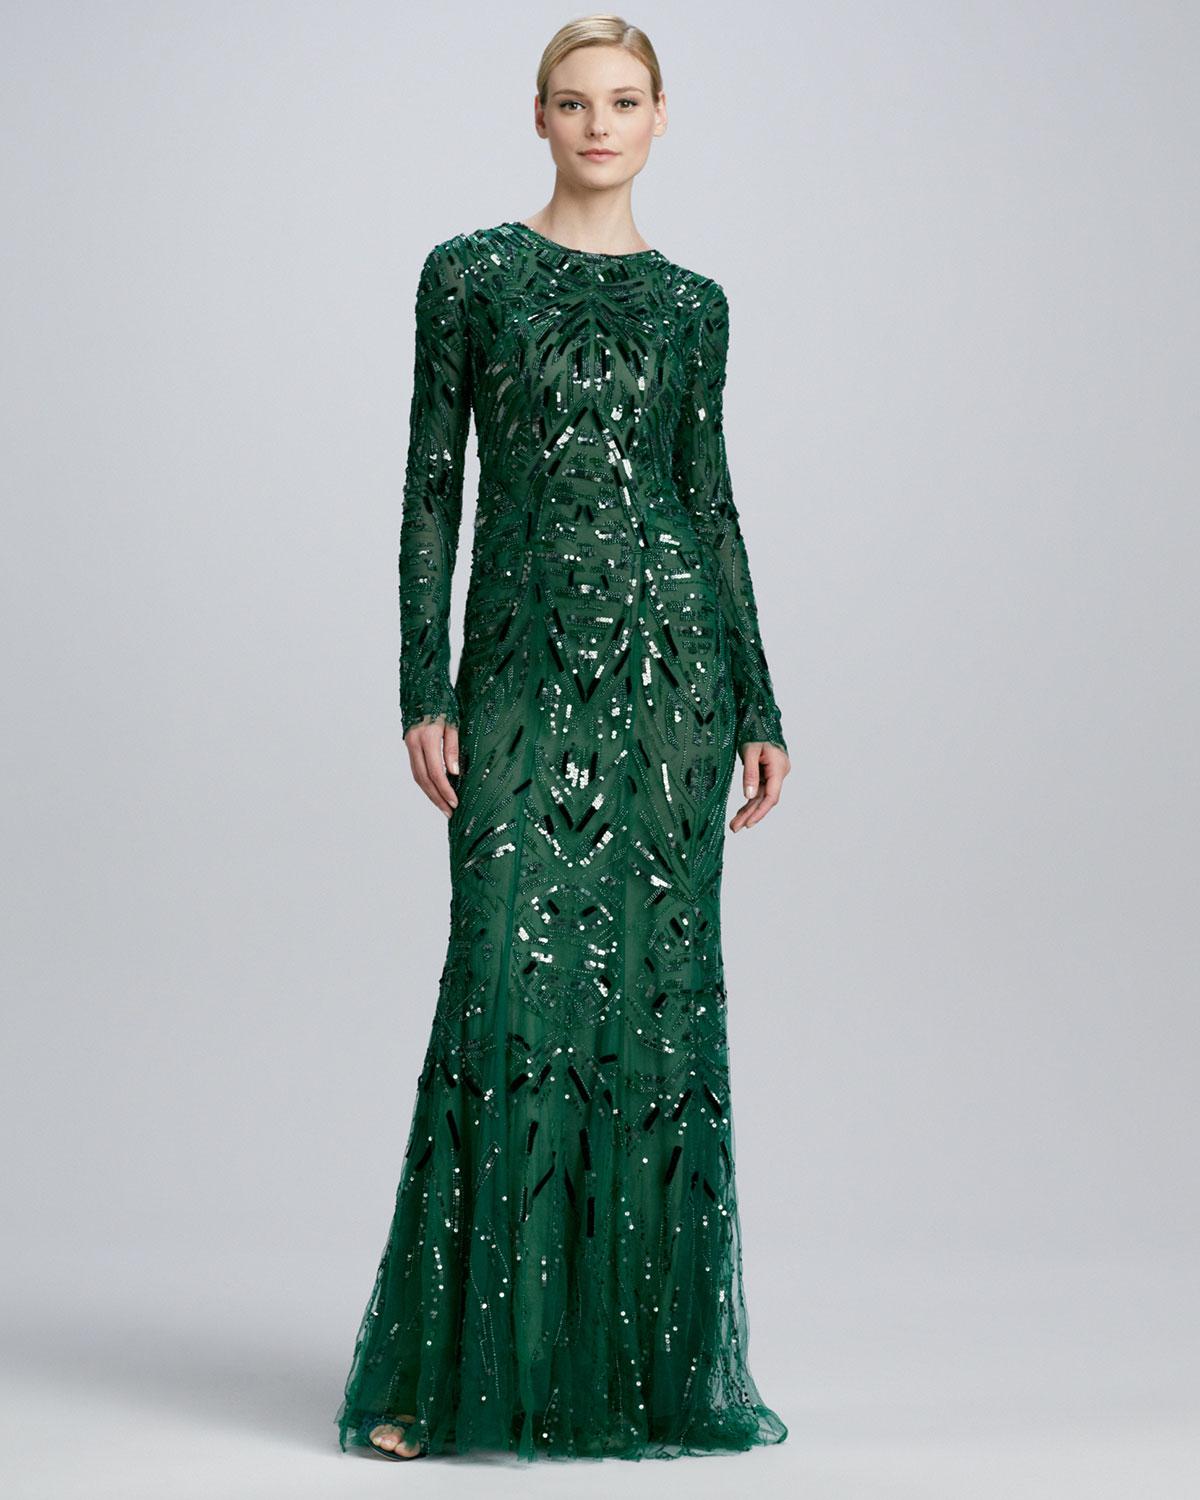 Zac Posen Taffeta Jacquard Gown Jet Black moreover Set moreover Monique Lhuillier Beaded Embroidered Long Sleeve Gown Emerald furthermore Set as well Thing. on oscar dresses for sale